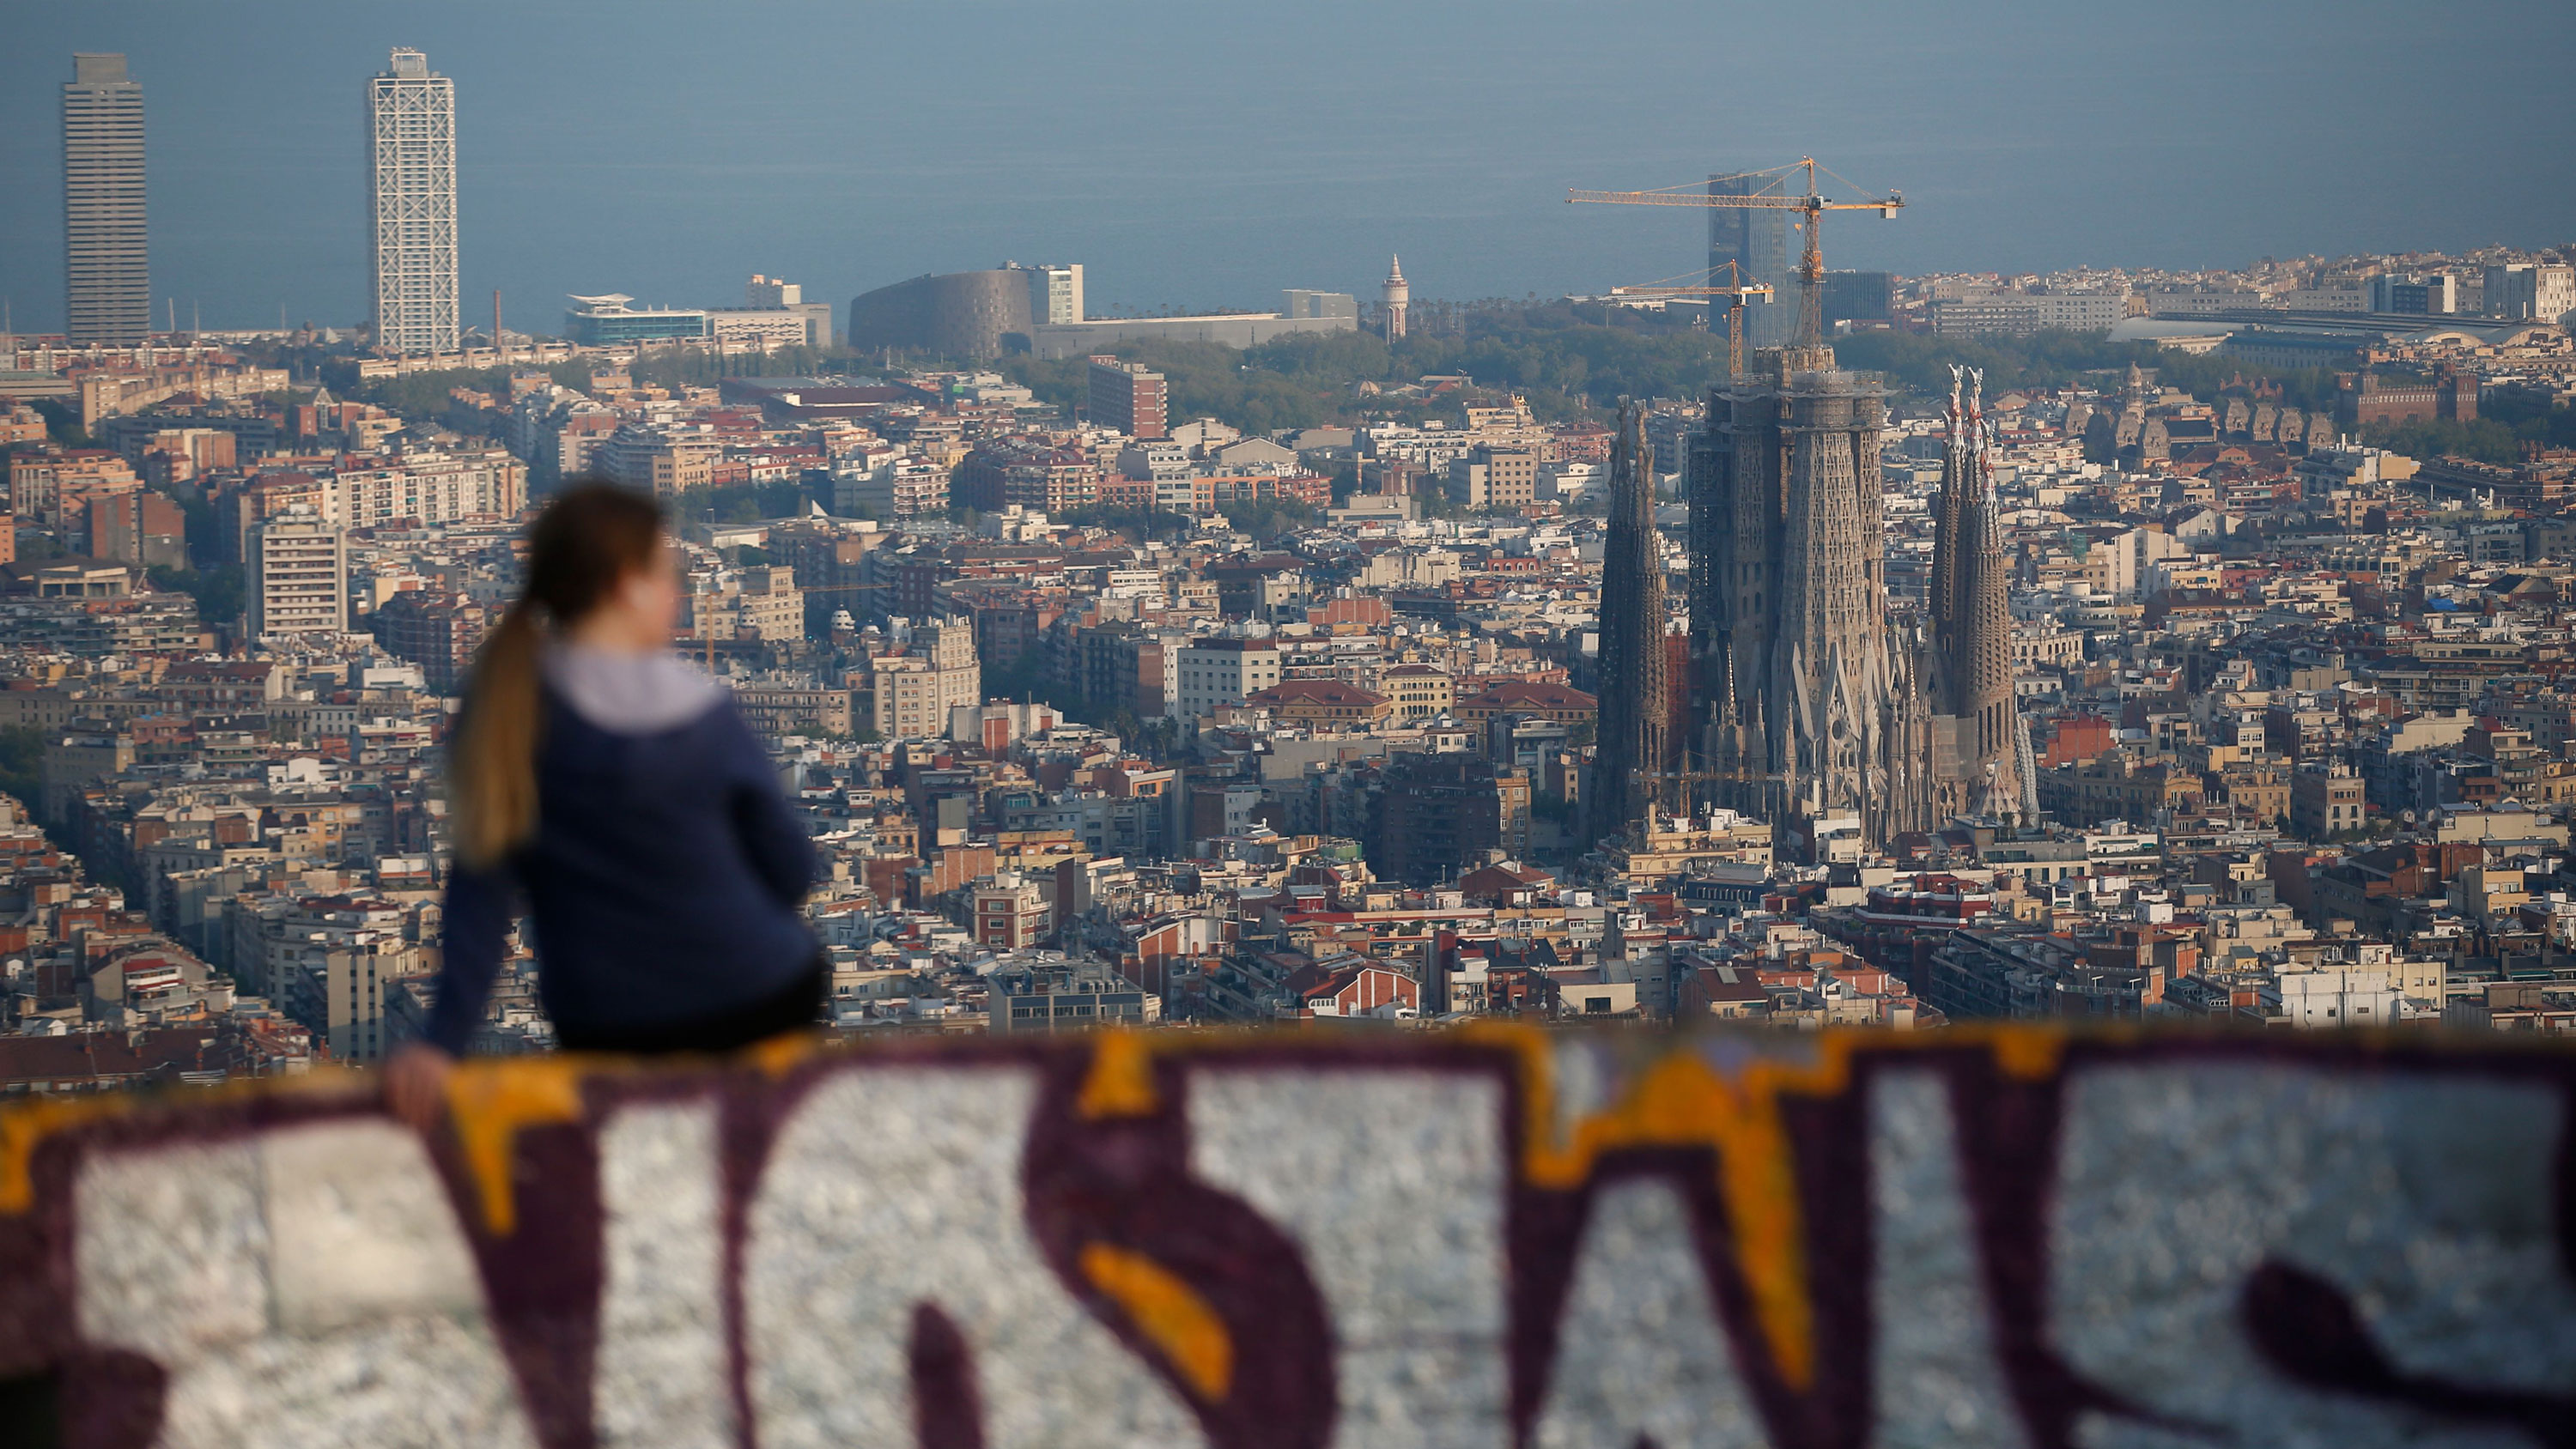 A woman looks over Barcelona on April 10, during a national lockdown to prevent the spread of the Covid-19 disease.